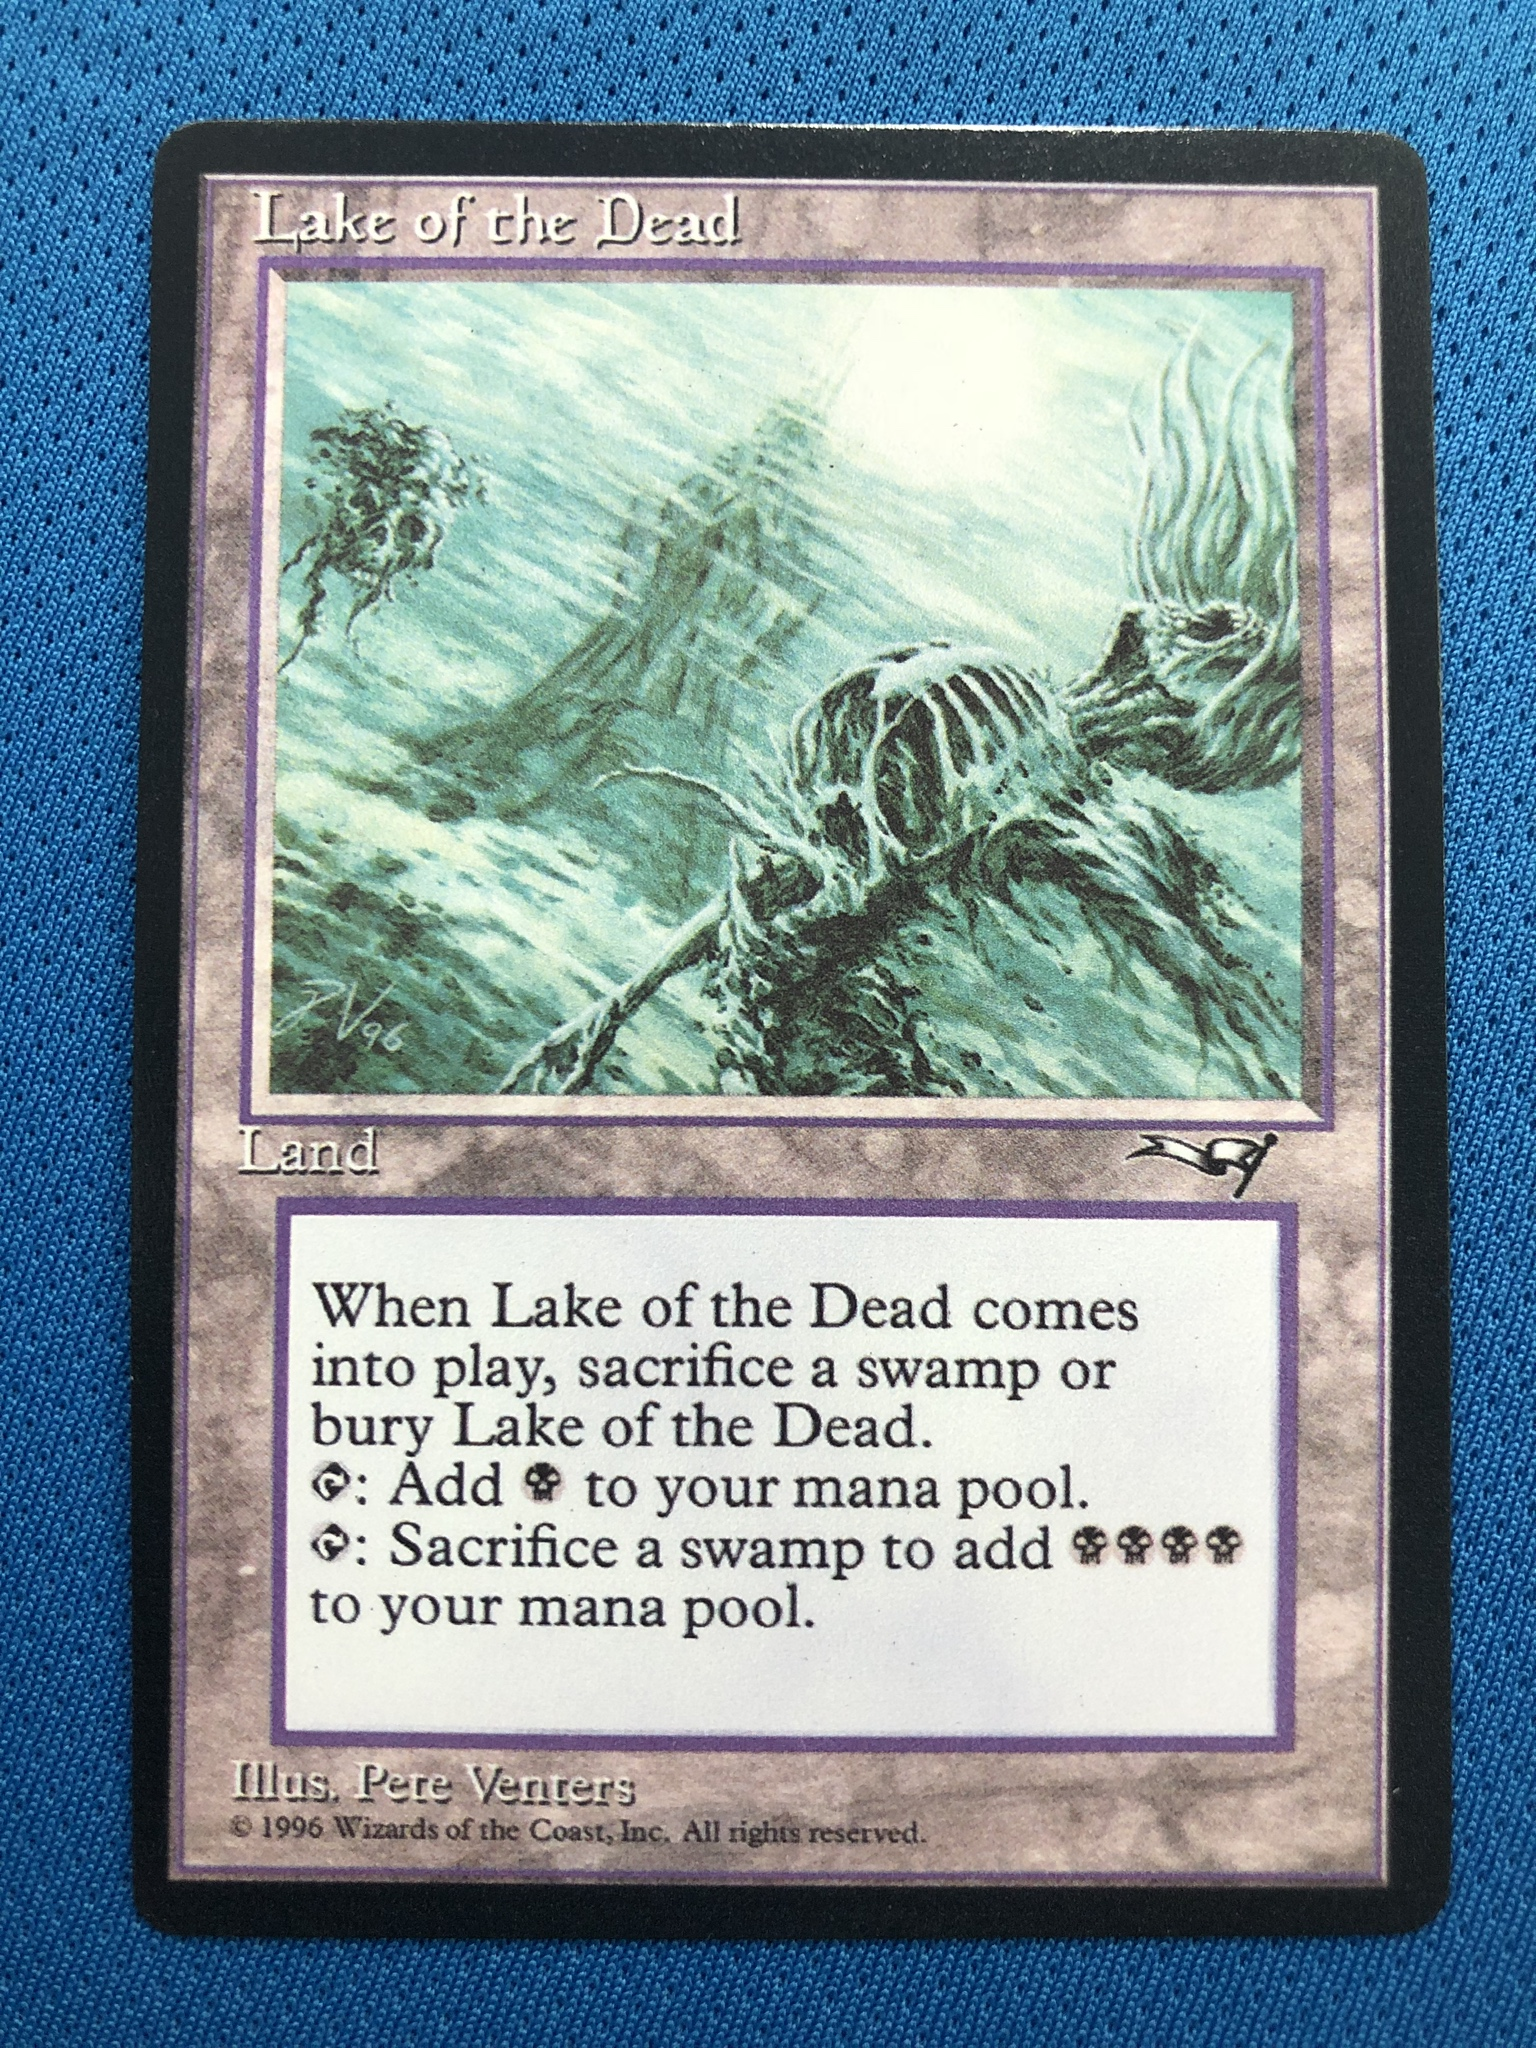 Lake Of The Dead ALL Alliances Magician ProxyKing 8.0 VIP The Proxy Cards To Gathering Every Single Mg Card.